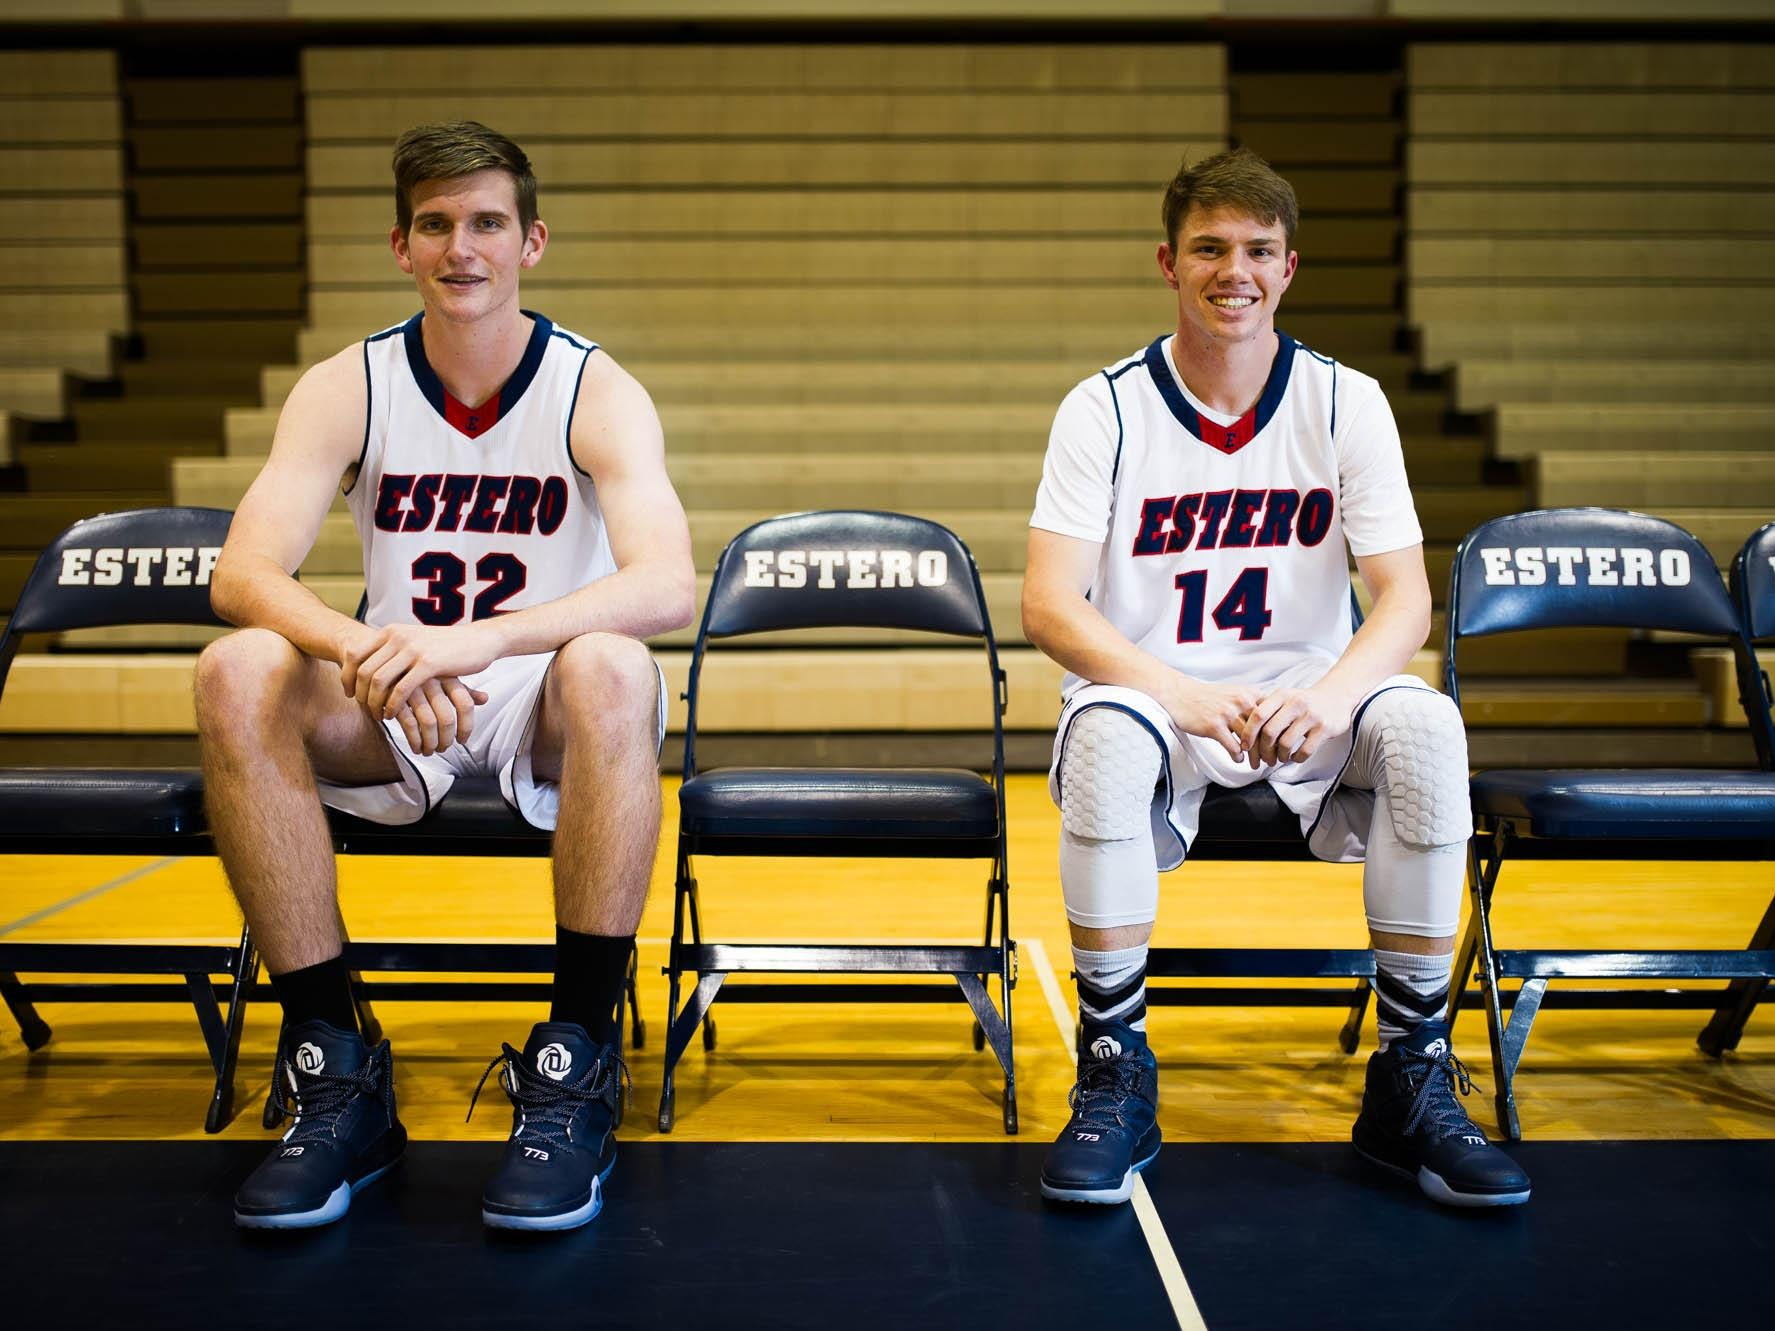 Estero High boy's basketball players Ryan Rocuant and Matt Deering, from left to right, pose for a photo during practice at Estero High School in Estero, Fla. on Friday, November 20, 2015